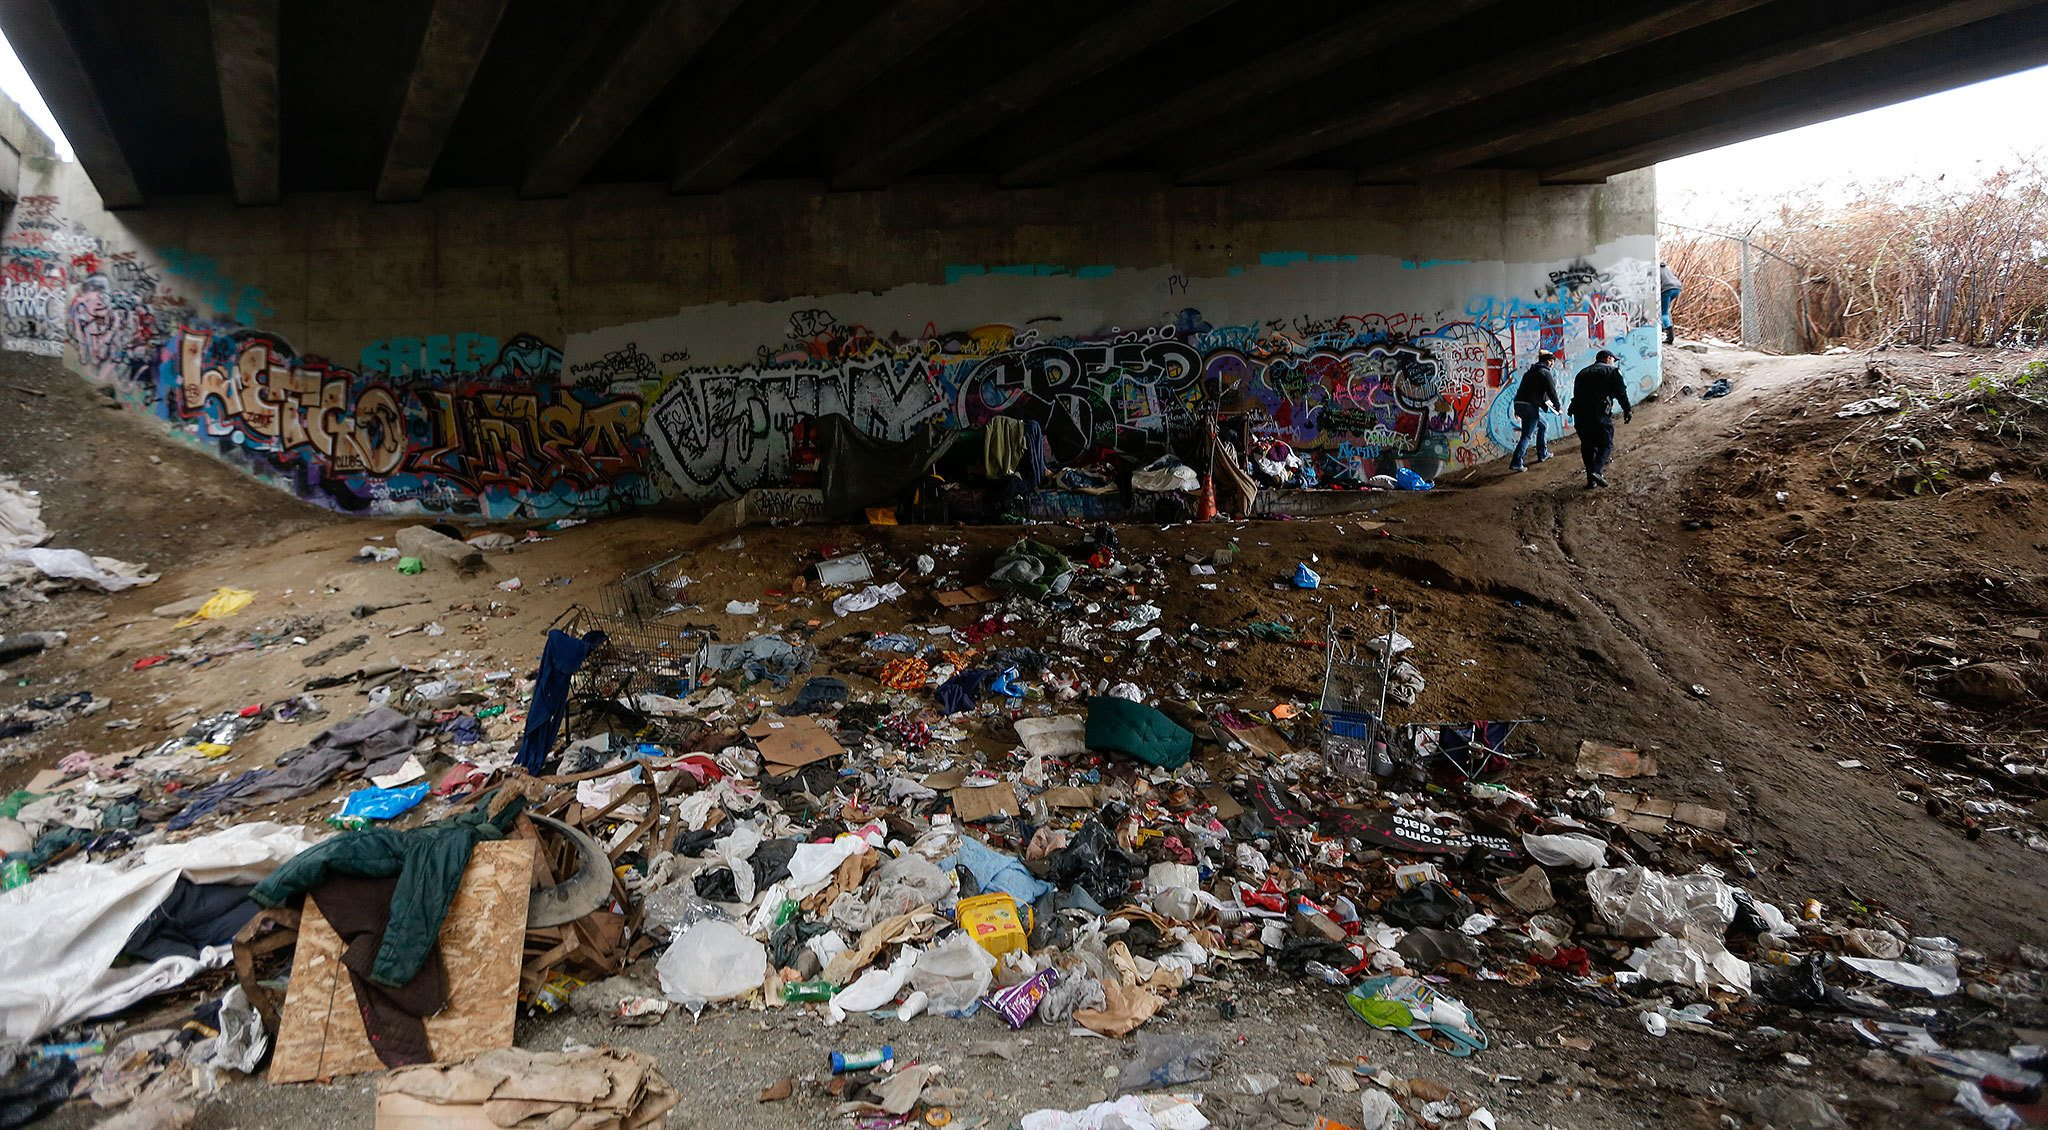 Police and social service workers search under an Everett overpass while administering a Point in Time survey of the homeless in Everett. The city of Everett is considering a lawsuit against Purdue Pharma, arguing the manufacturer of OxyContin is responsible for the community's surge in overdose deaths, homelessness and street crime. (Herald file)